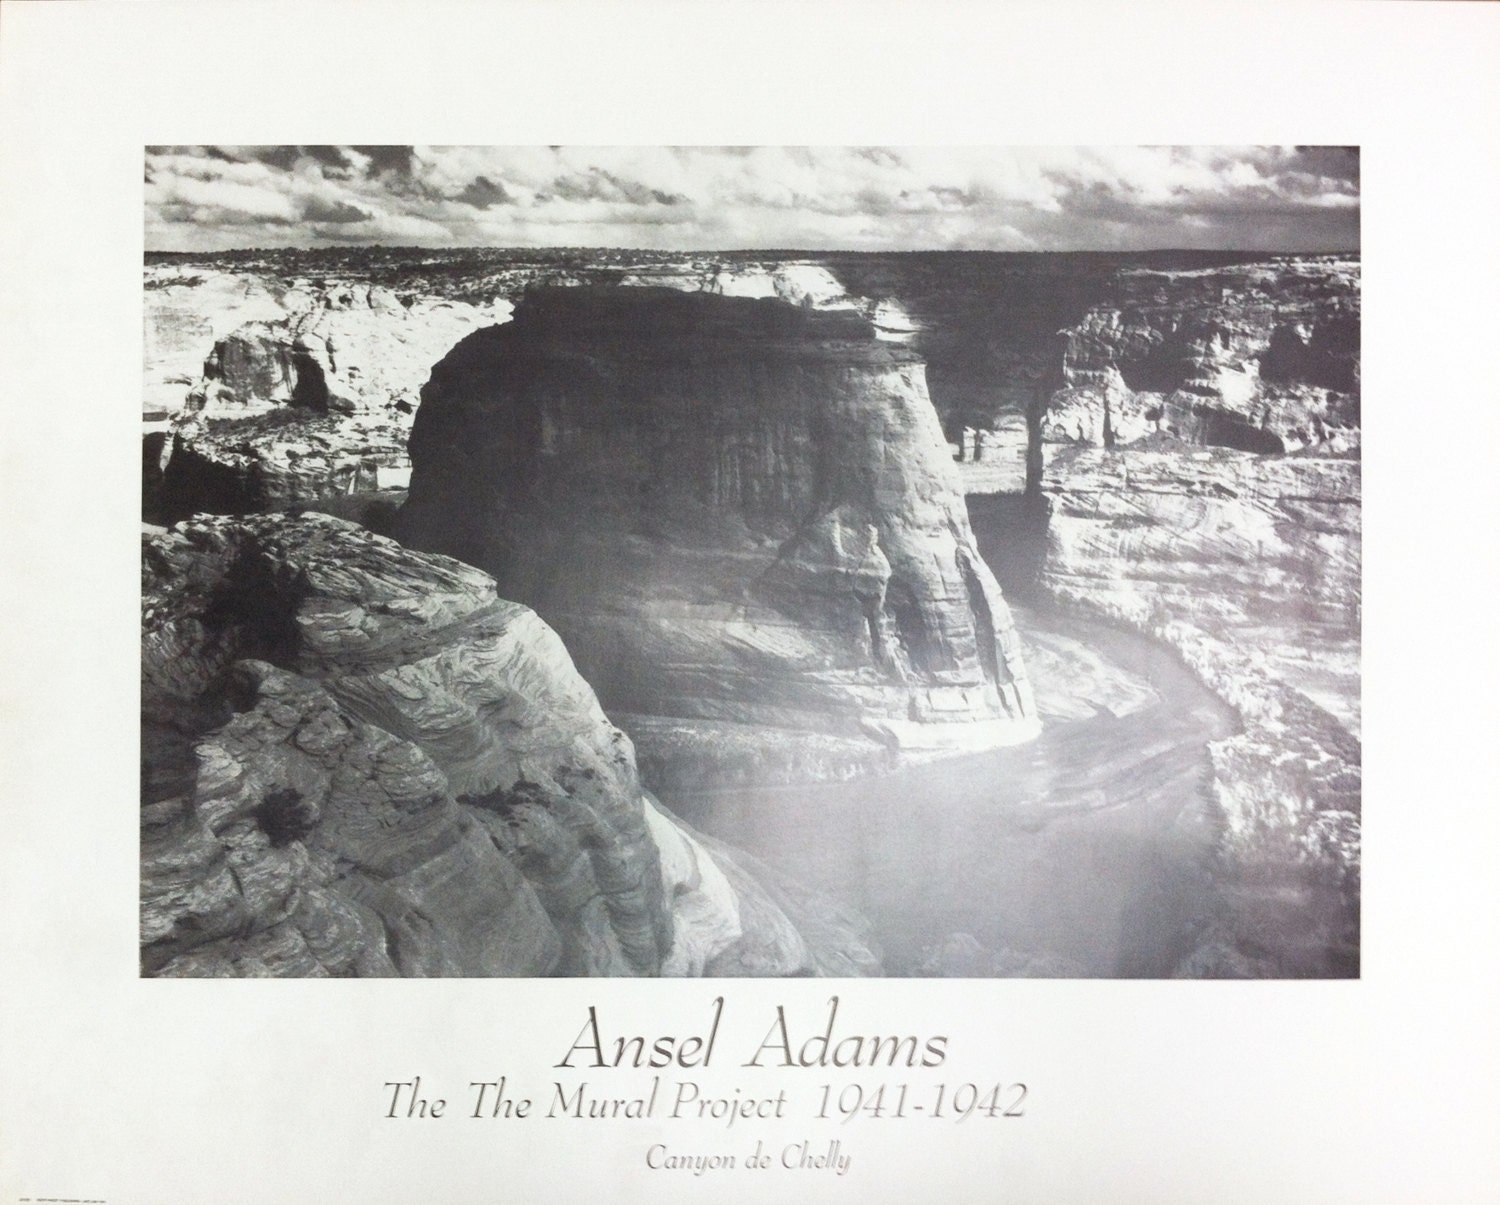 Ansel adams canyon de chelly the mural project for Ansel adams mural project 1941